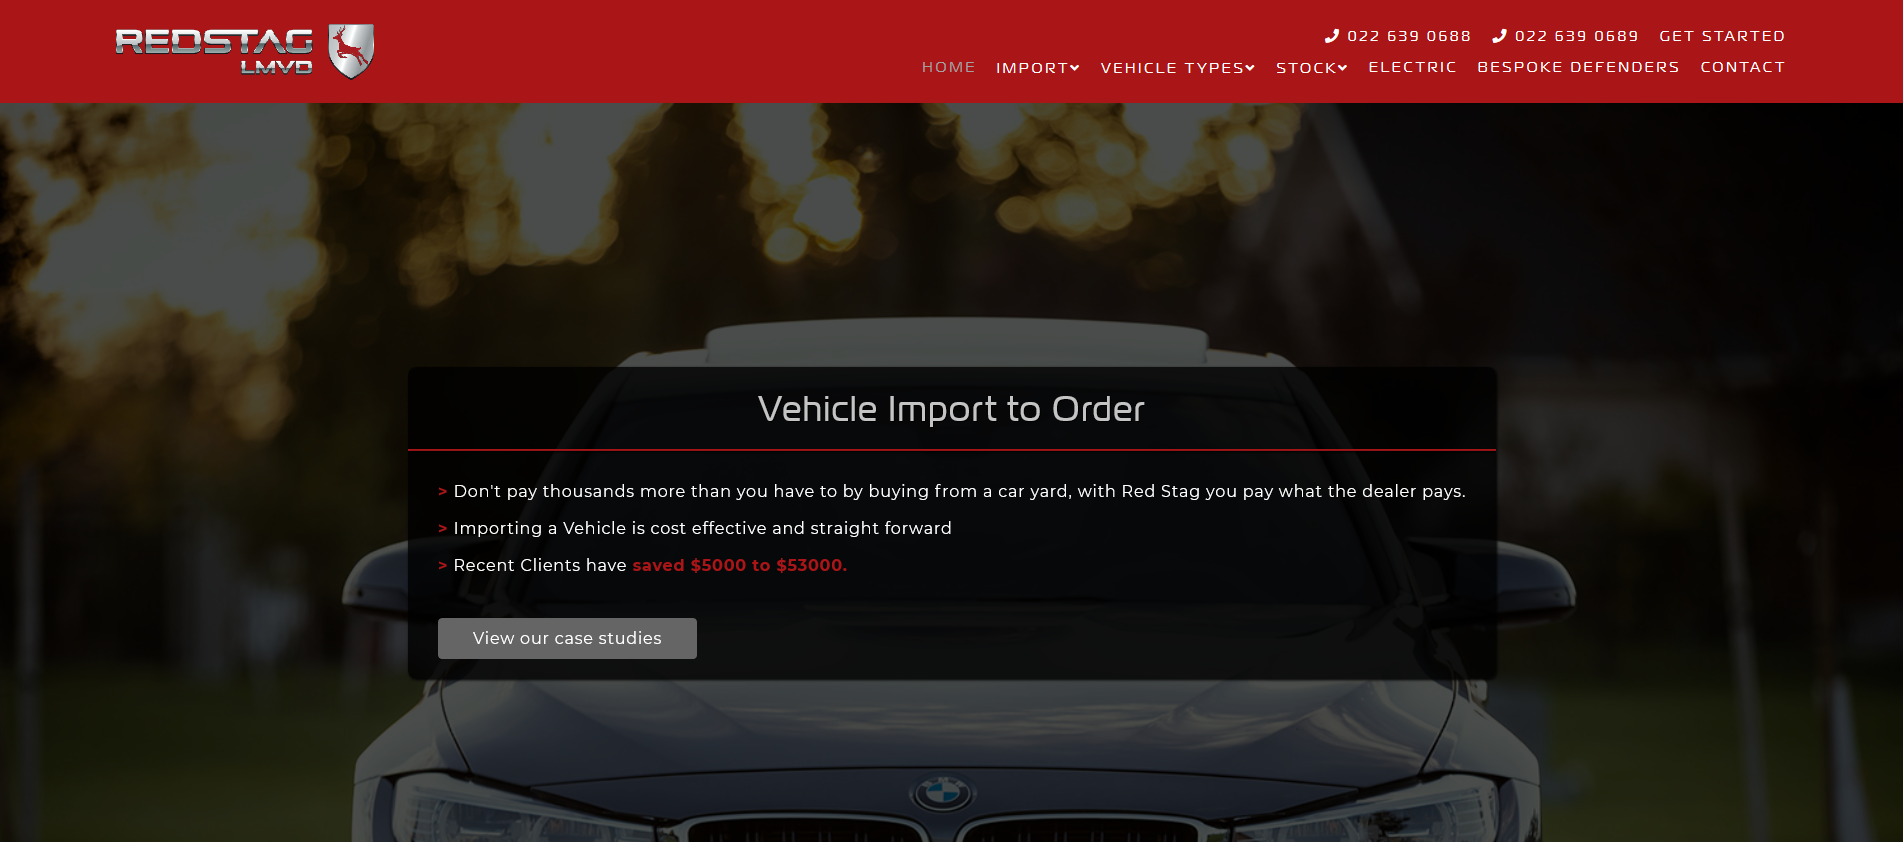 Red Stag Vehicle Importer